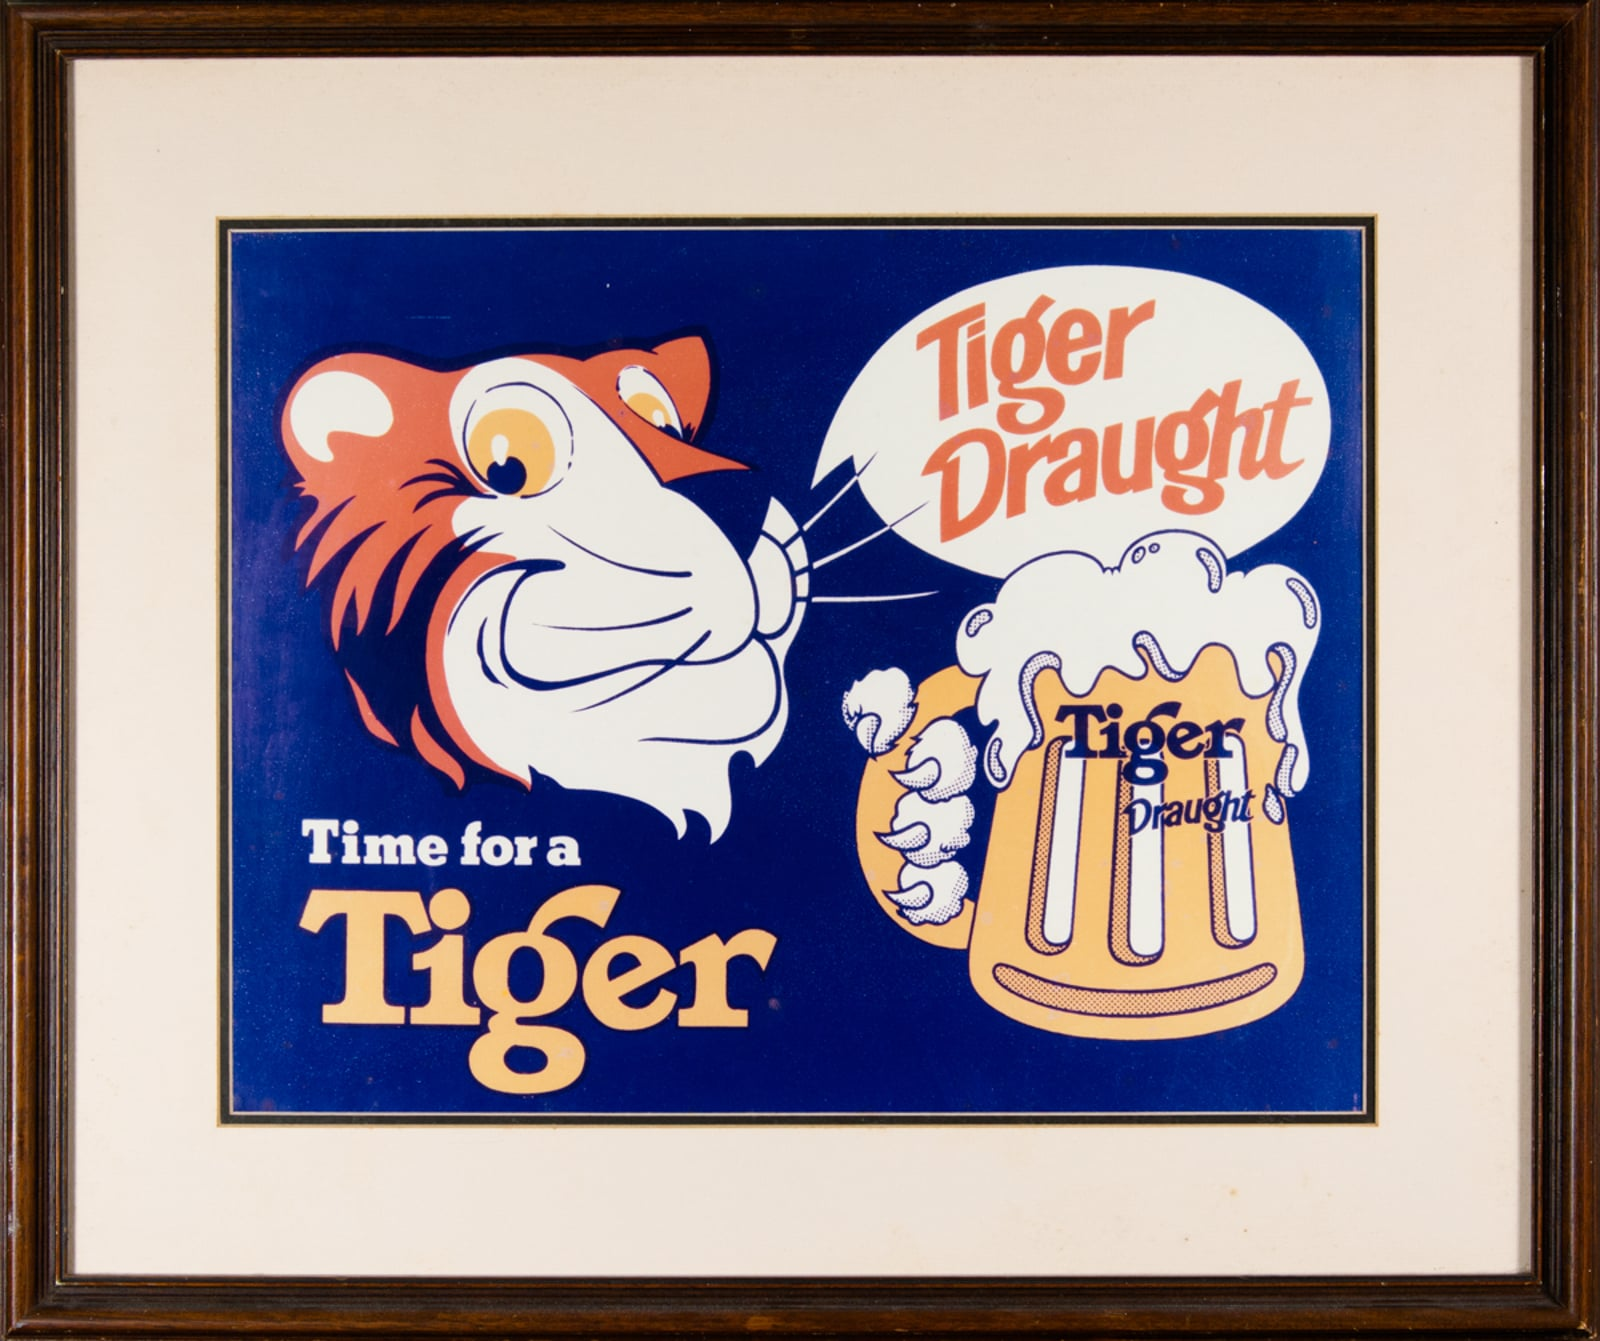 Time for A Tiger Advertisement